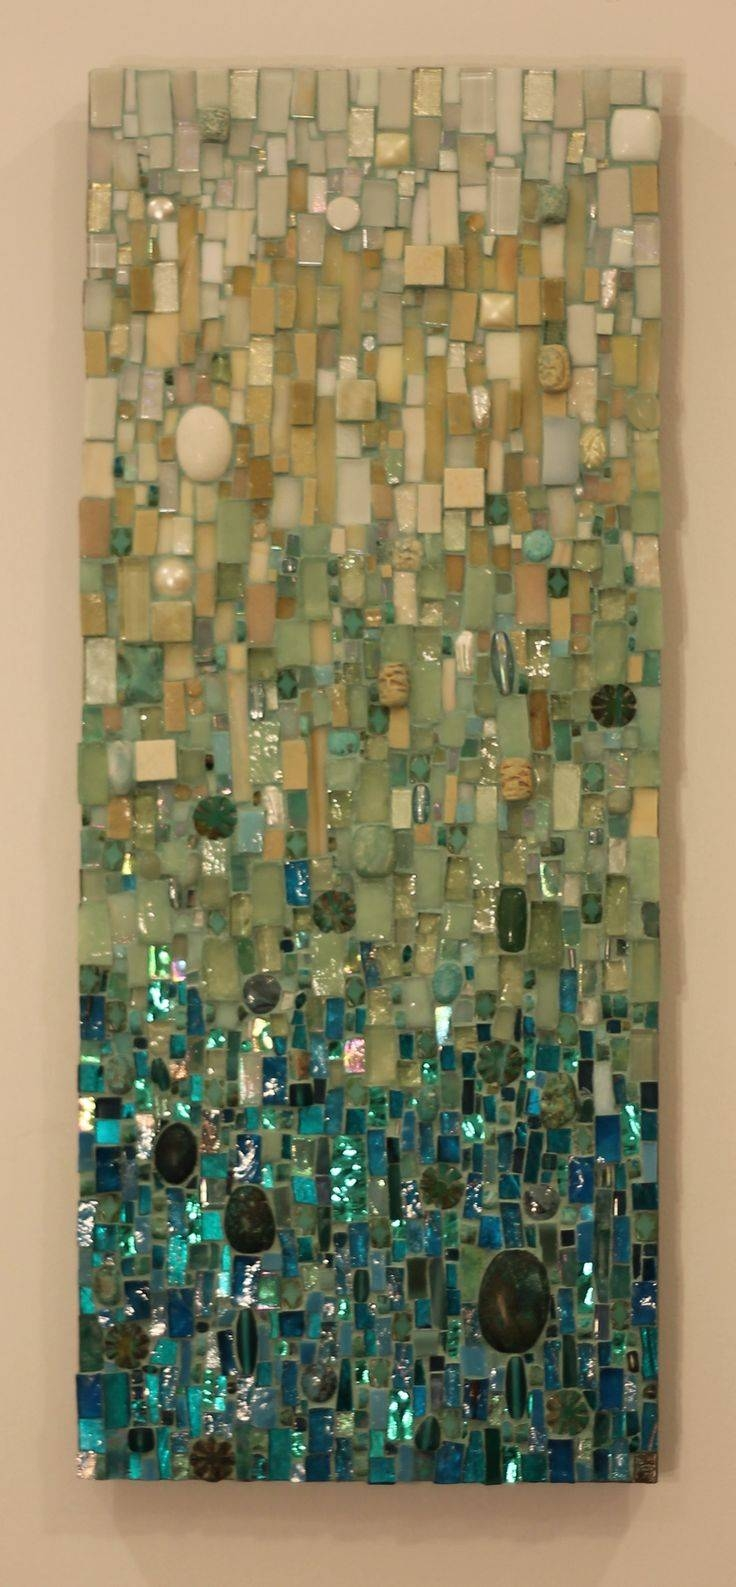 25+ Unique Glass Wall Art Ideas On Pinterest | Fused Glass Art With Regard To Current Filigree Wall Art (View 2 of 30)